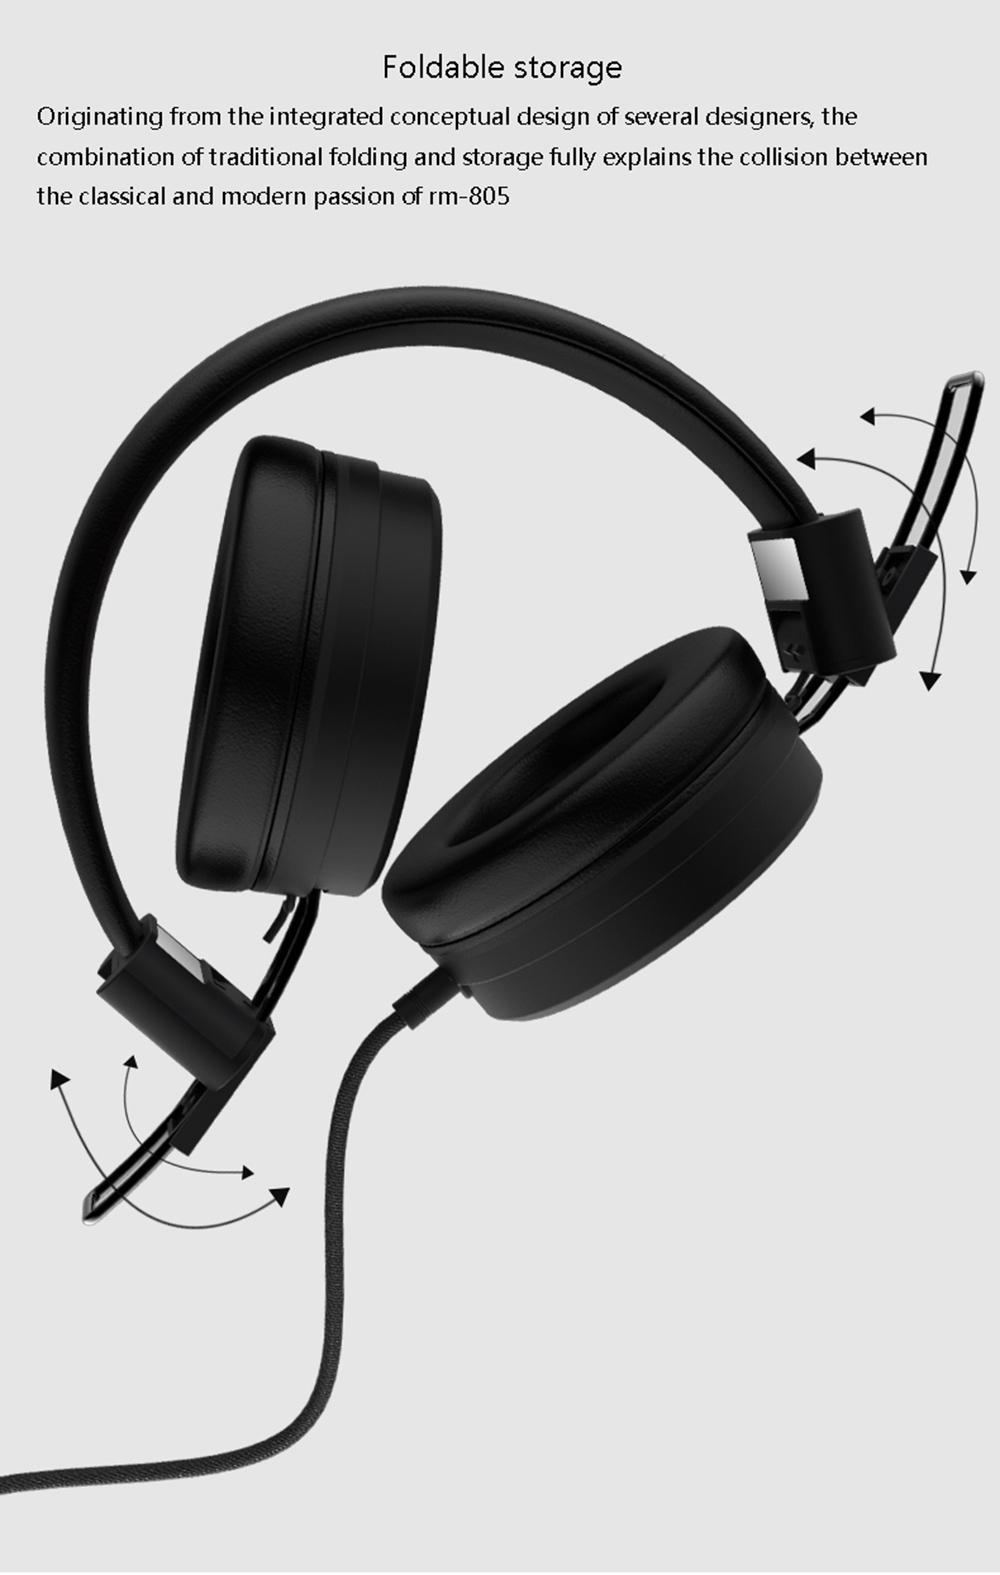 REMAX RM - 805 Wired Headset Music Over-ear Headphone with Microphone- Black